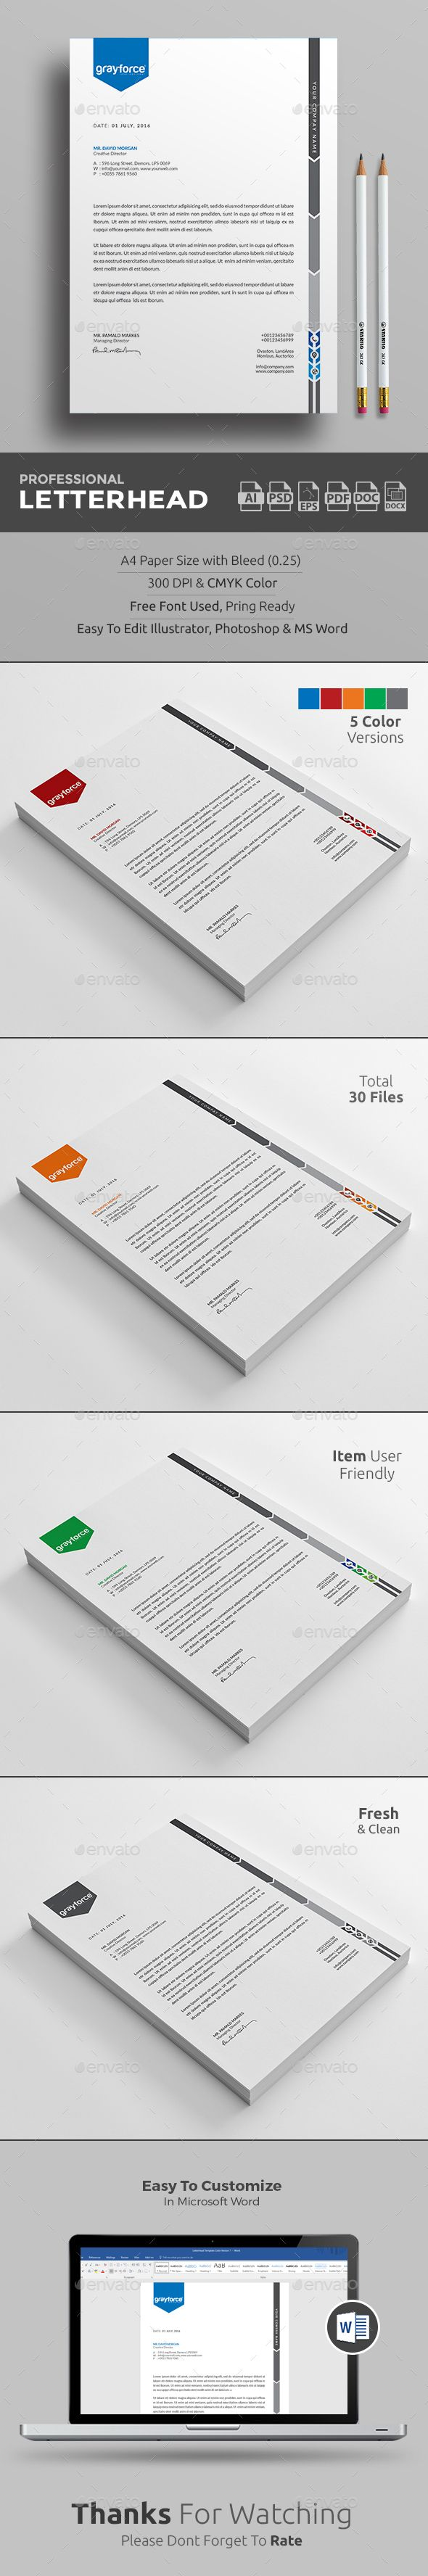 Buy Letterhead By Upra On GraphicRiver Corporate Template With Super Modern And Look Page Designs Are Very Easy